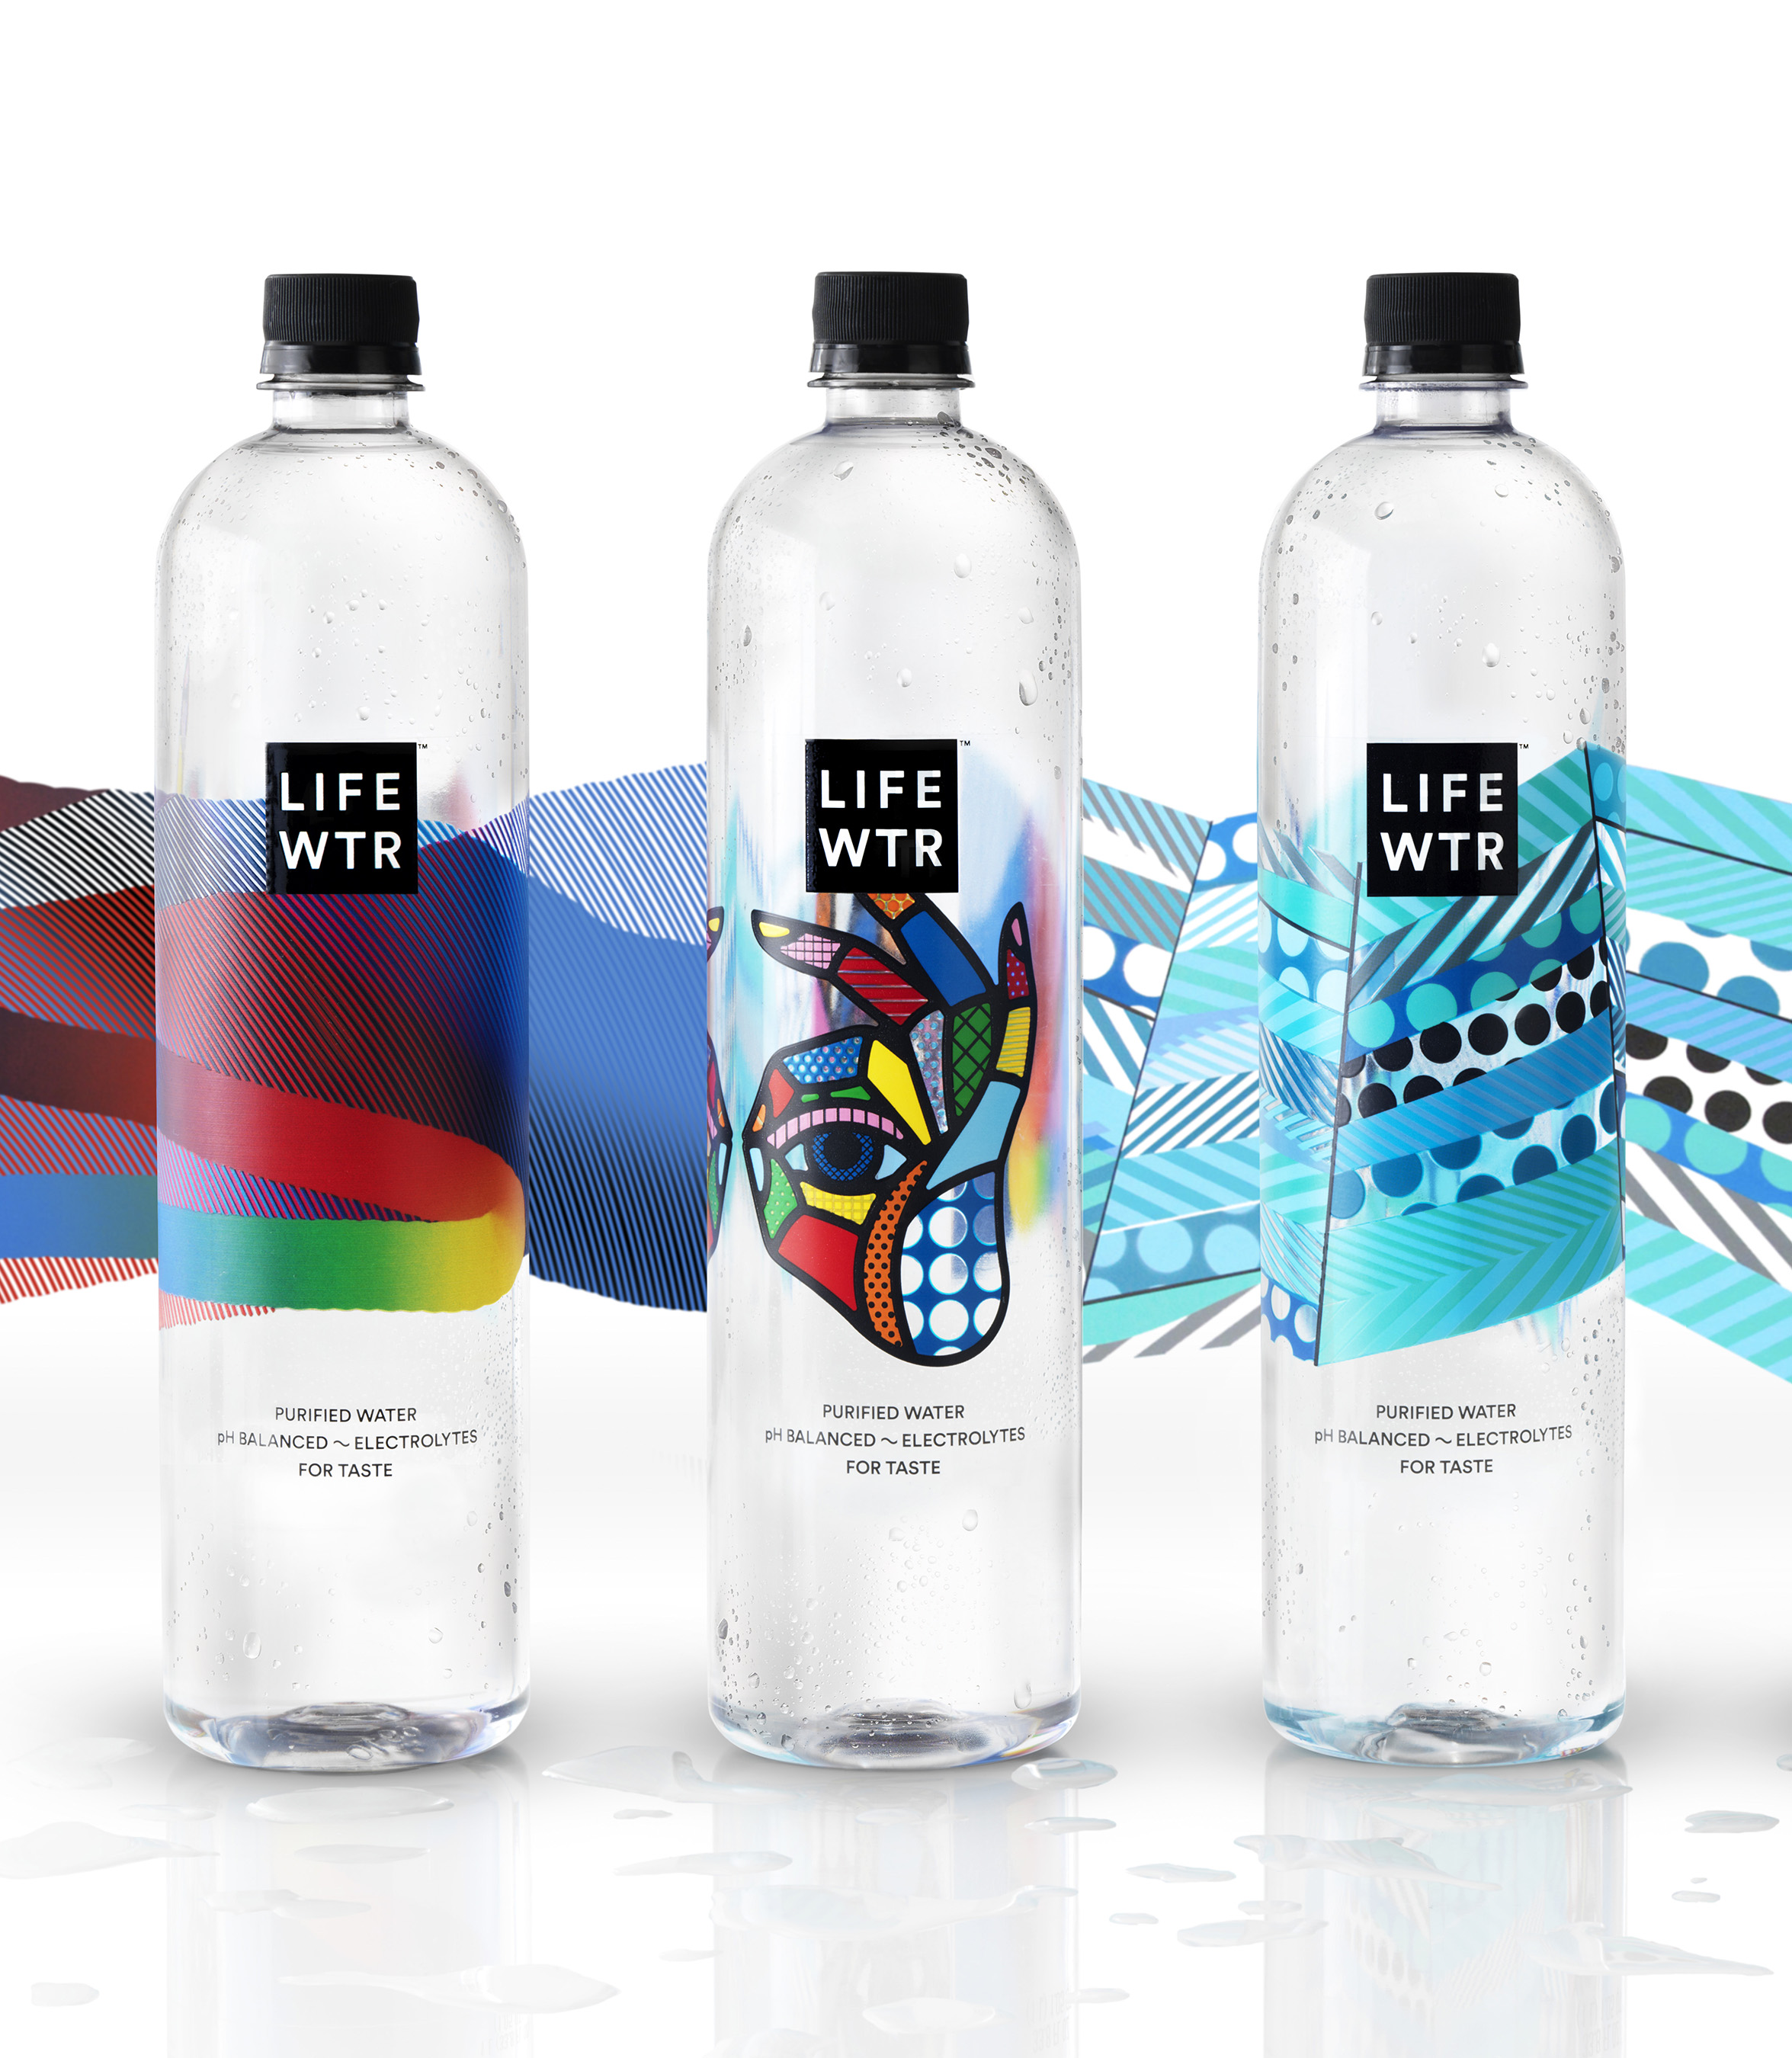 LIFEWTR from PepsiCo, a premium bottled water, fuses creativity & design to serve as a source of inspiration & hydration. The Series 1 artists are (bottles L-R): MOMO; Craig & Karl; Jason Woodside.